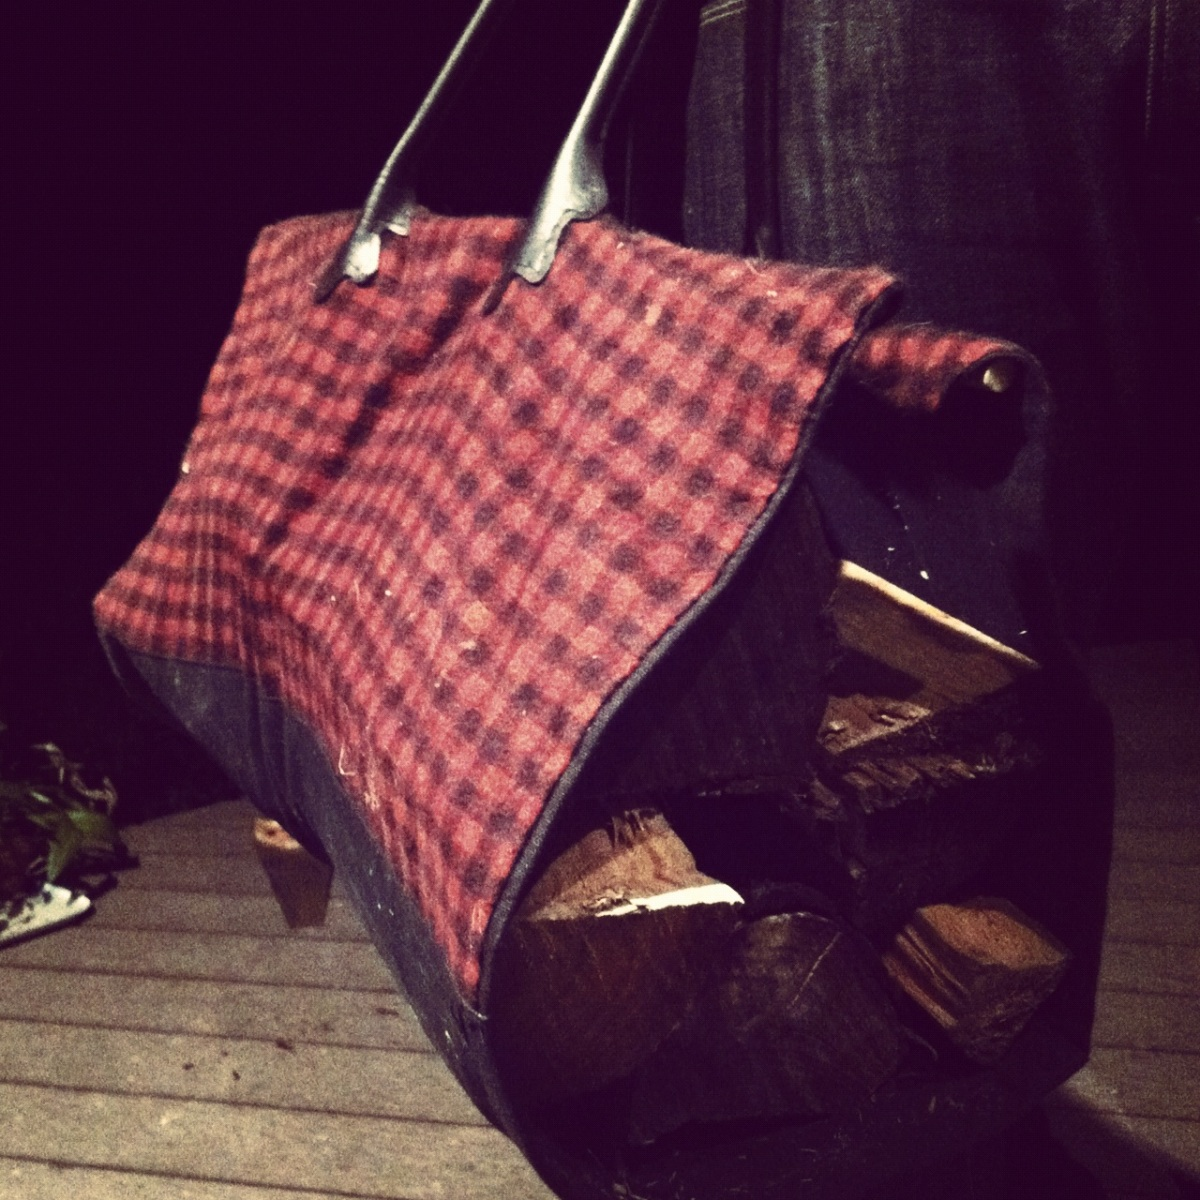 The Firewood Bag. Cotton and Canvas